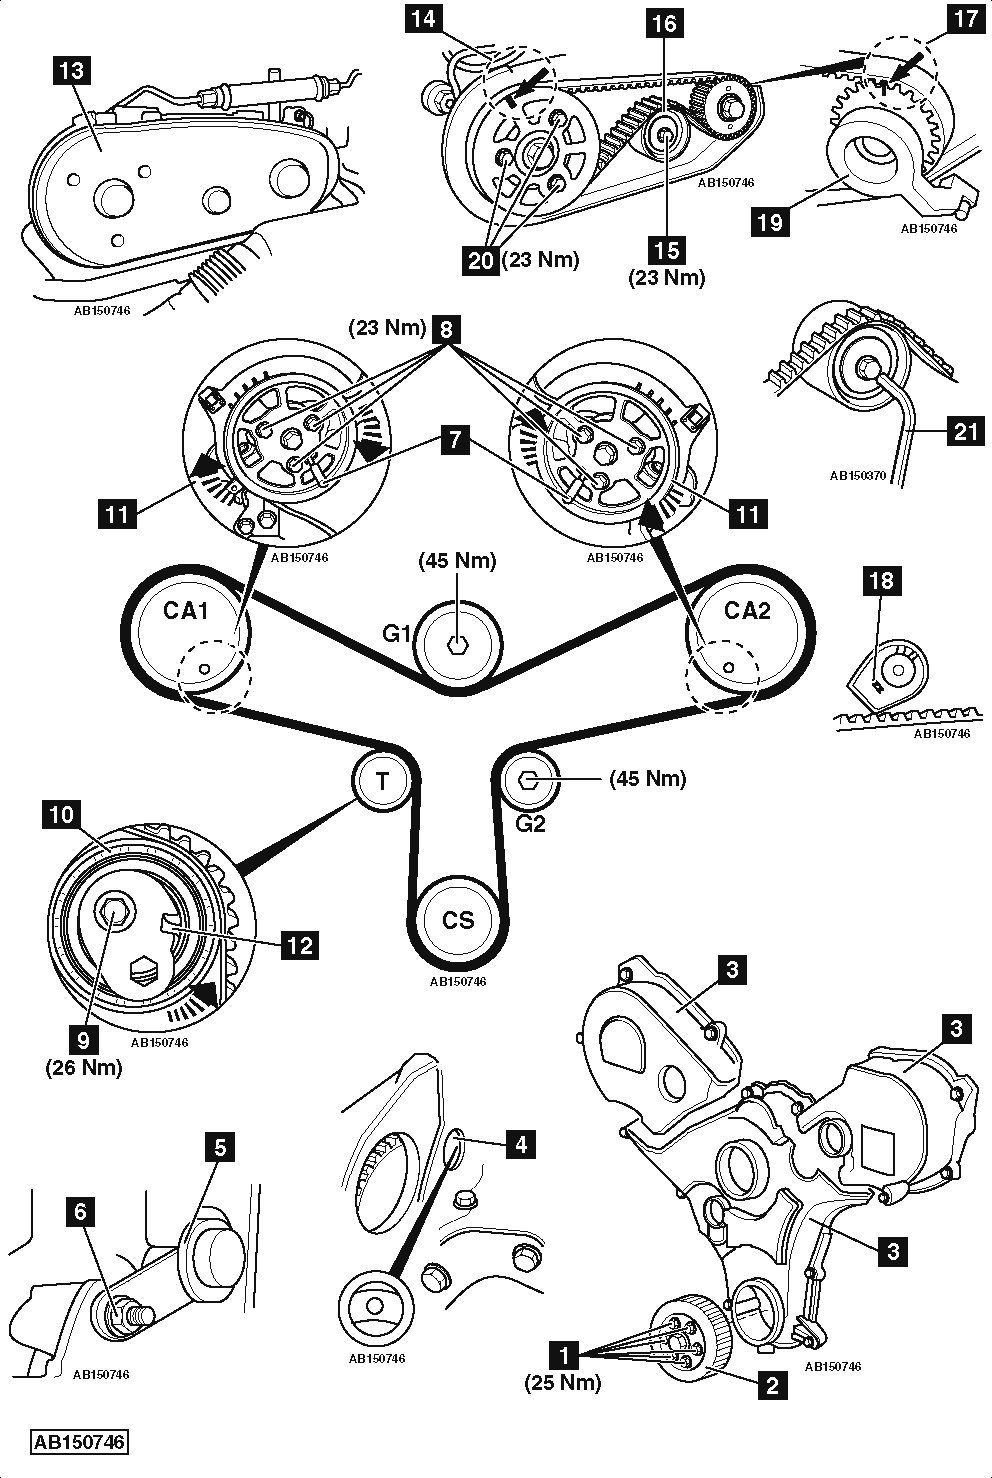 2013 F150 Wiring Diagram as well 3421m Find 1999 F350 Diesel Truck Wiring Diagram additionally Chevrolet Tail Light Wiring Diagram likewise Ford Upfitter Wiring Diagram besides Bmw E46 Lcm Wiring Diagram. on ford upfitter switches wiring diagram